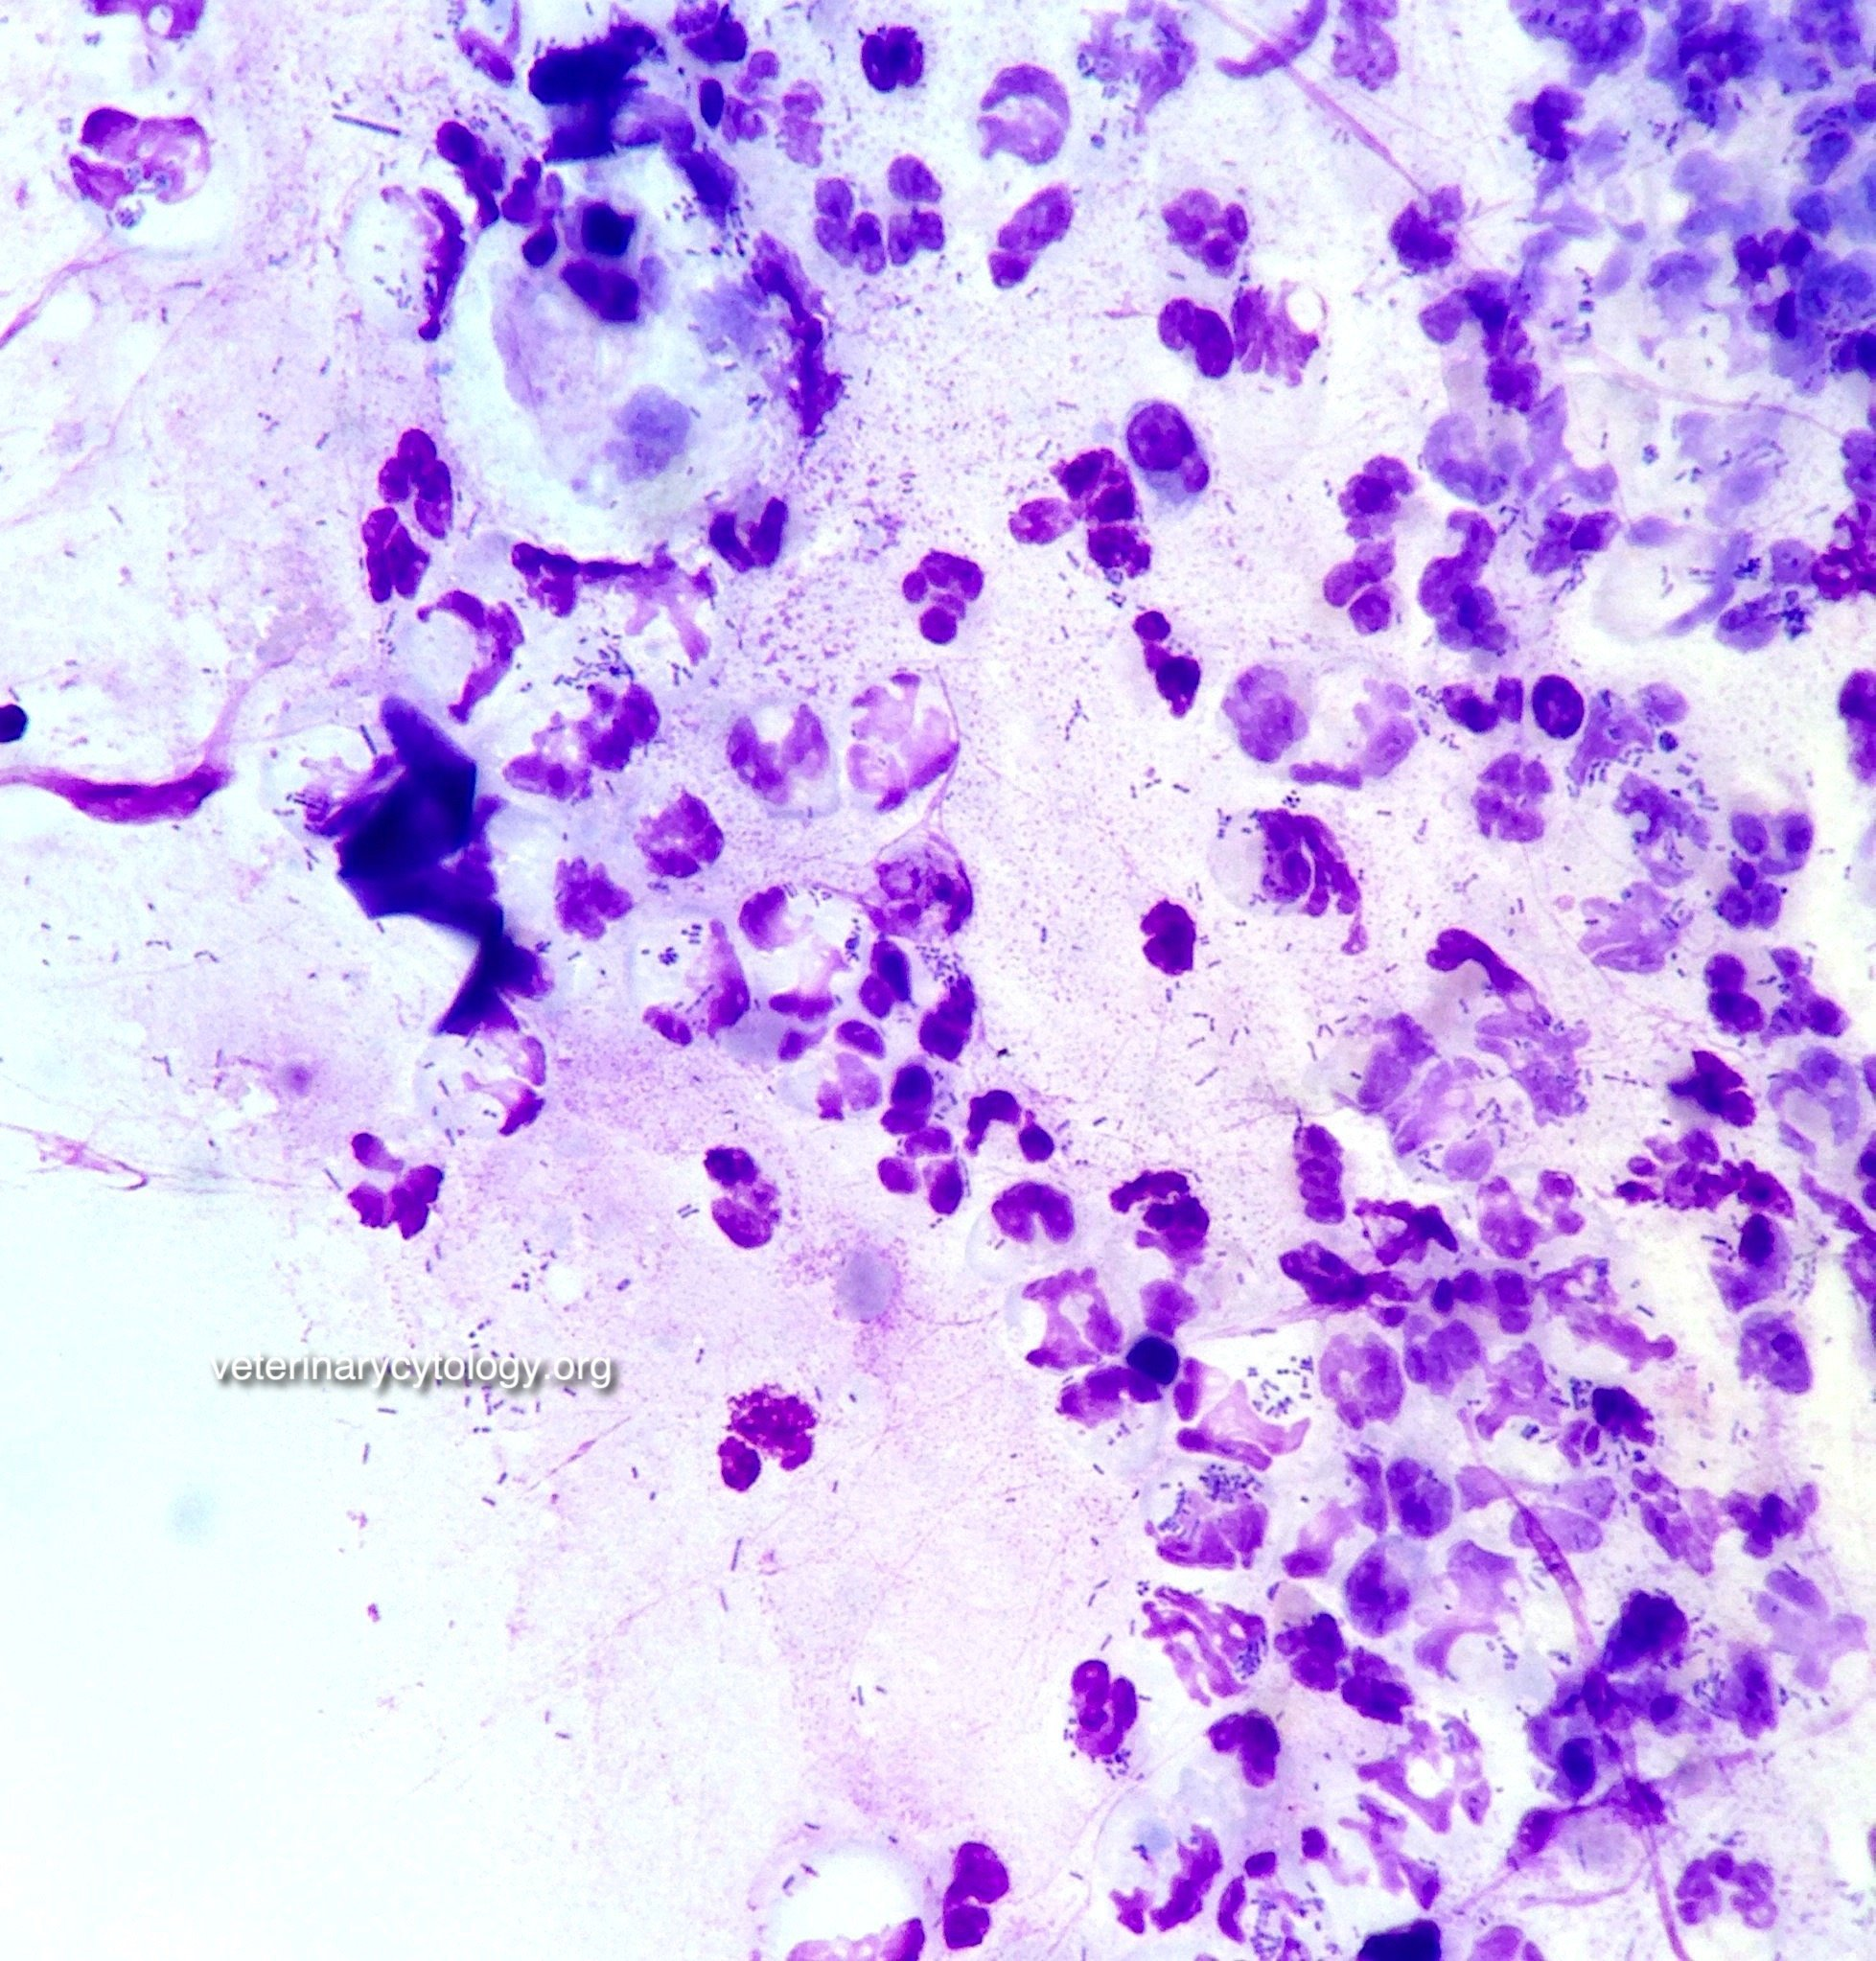 Septic neutrophilic inflammation, ear, dog.